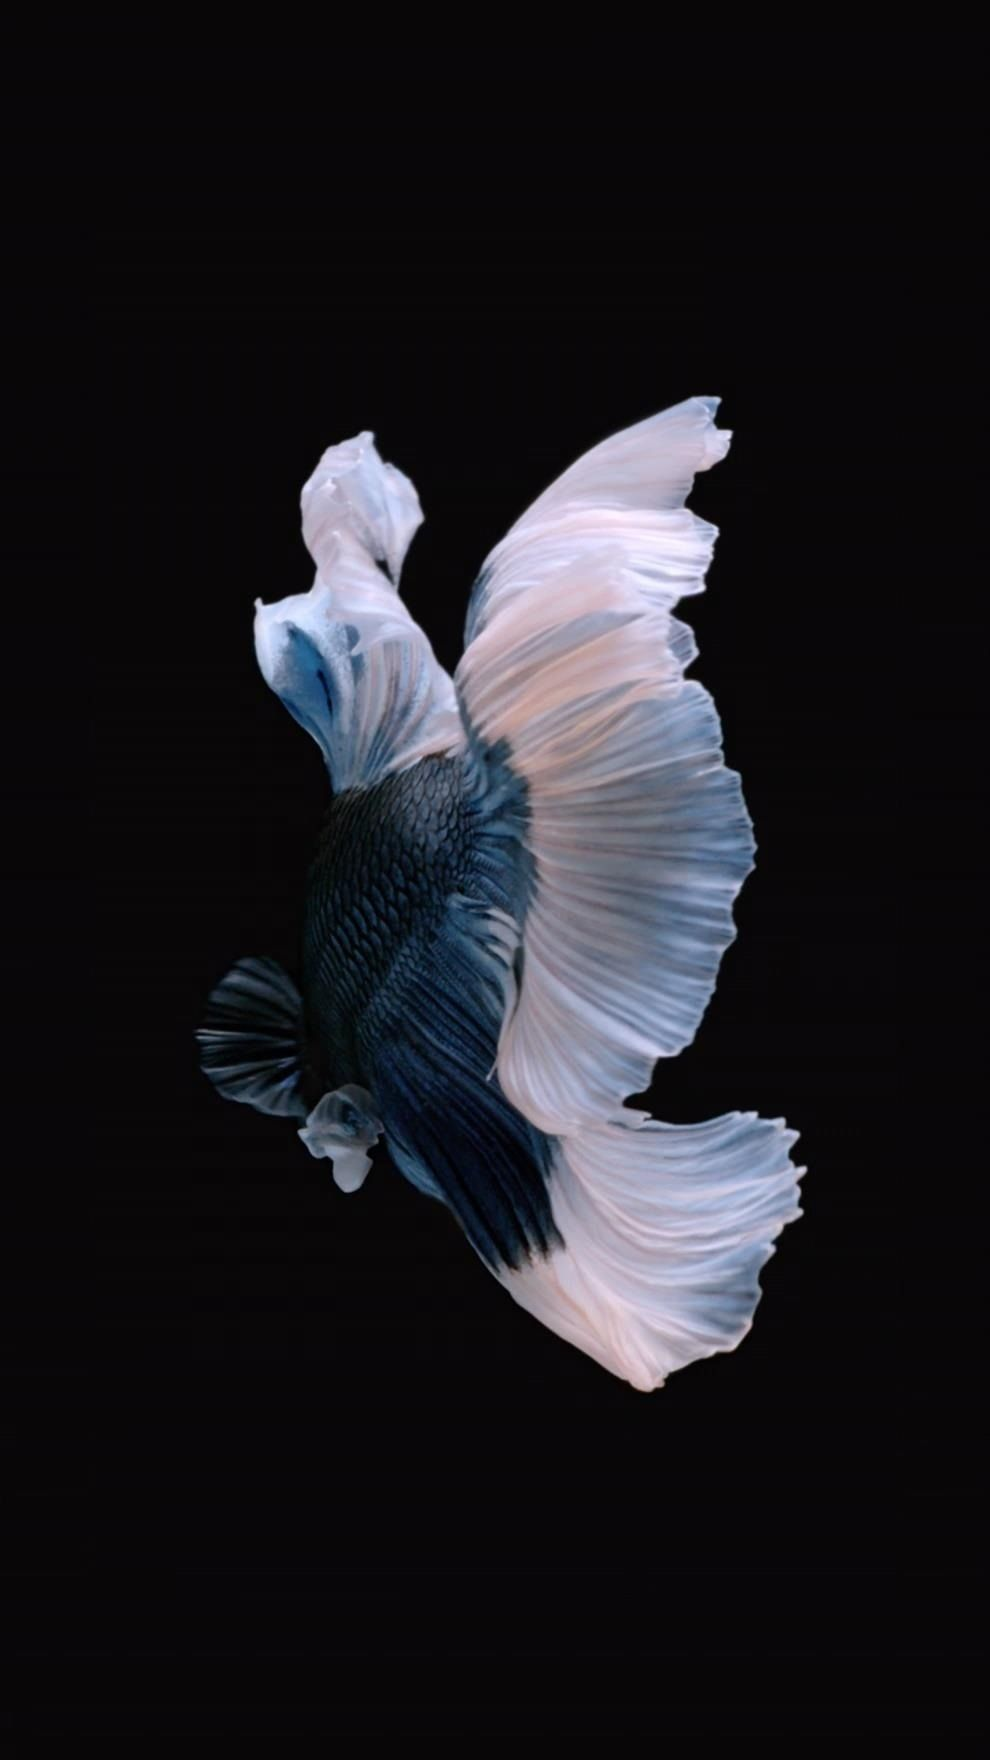 How To Get Back Apple's Live Fish Wallpapers on Your